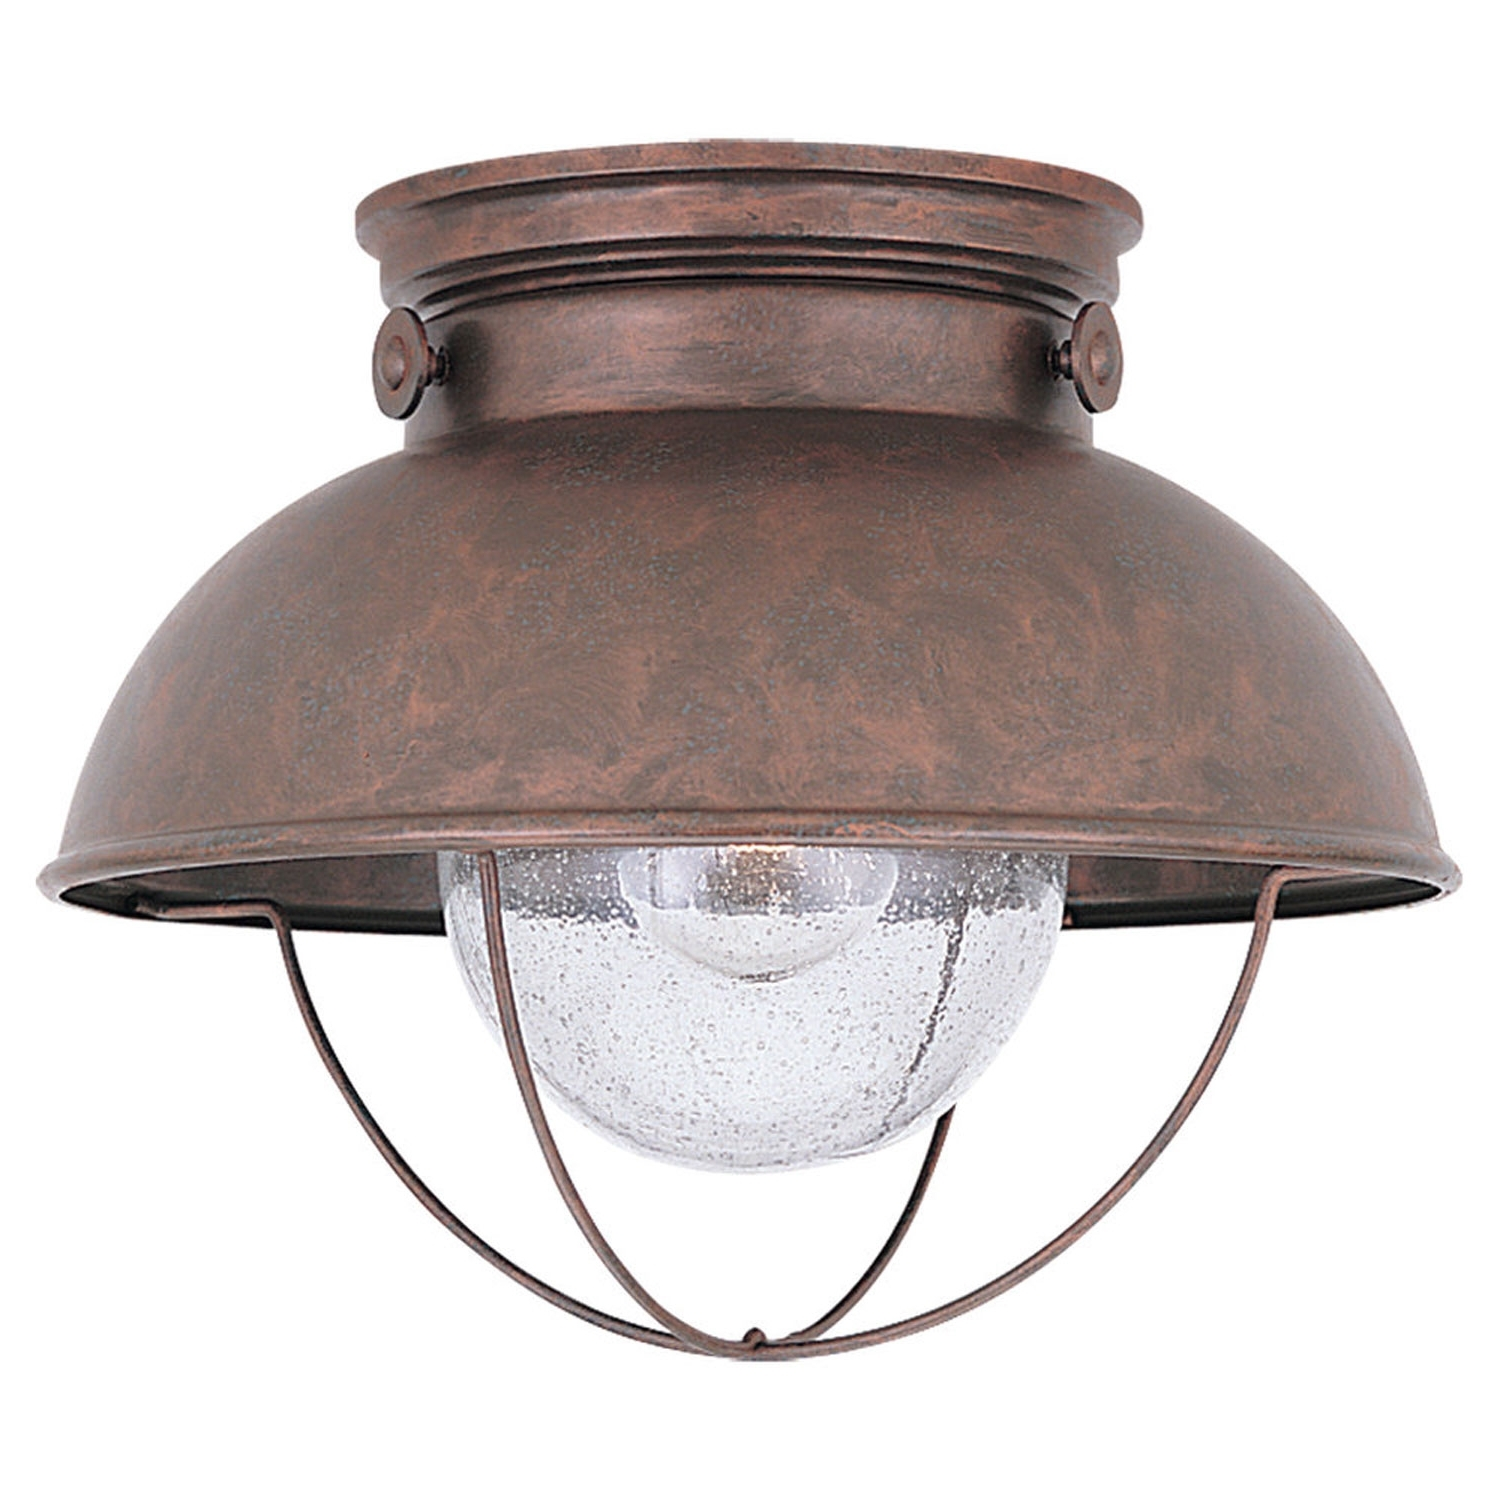 Brass Outdoor Ceiling Lights Pertaining To Newest Outdoor Ceiling Lighting (Gallery 1 of 20)